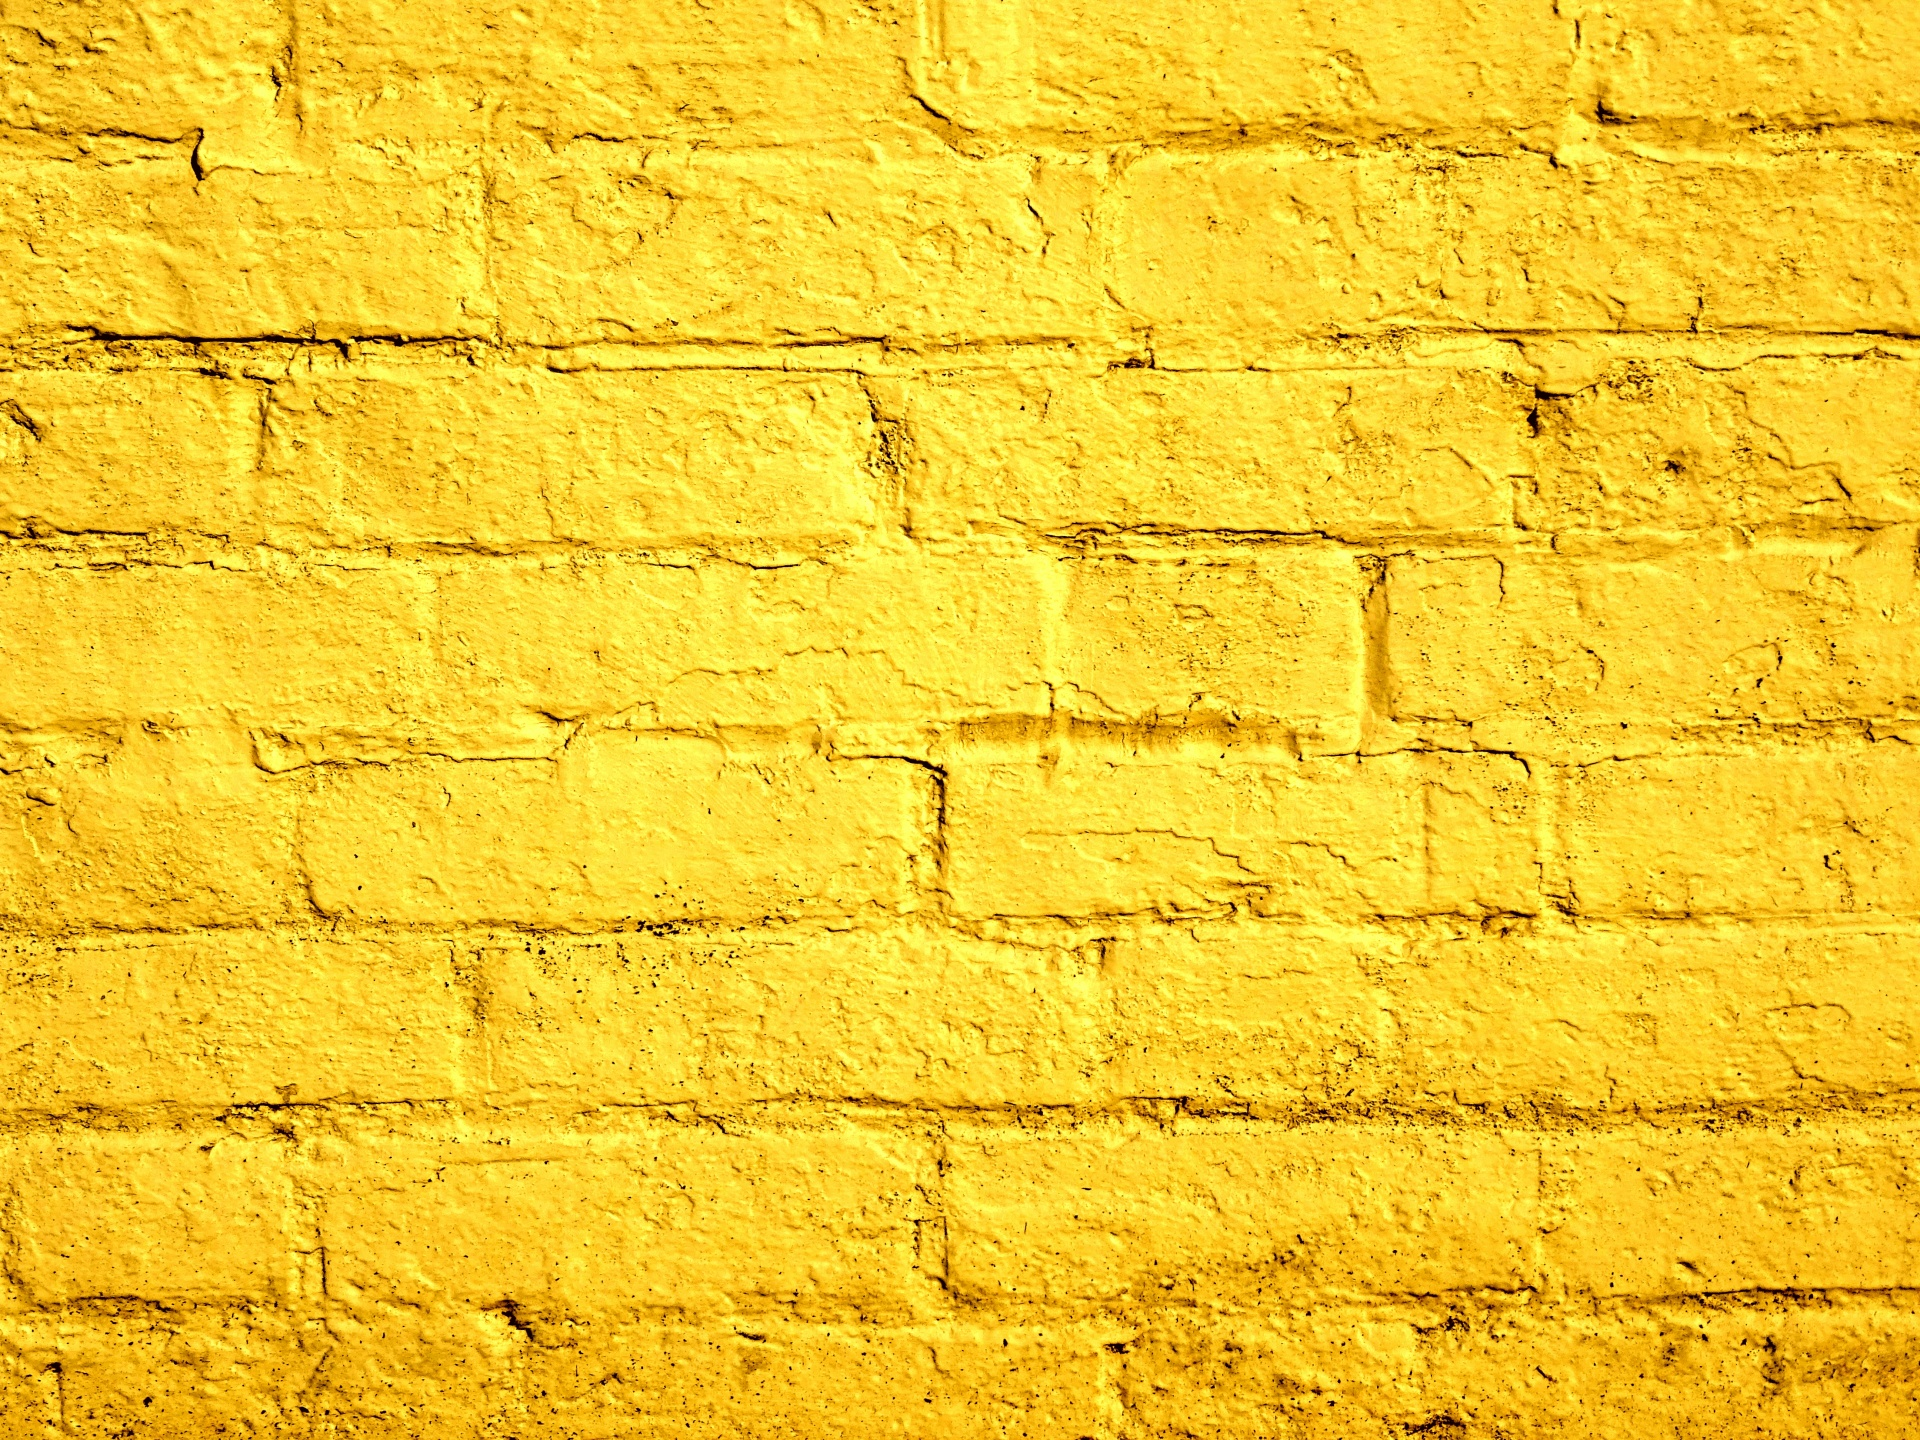 Yellow Painted Brick Wall Free Stock Photo - Public Domain Pictures